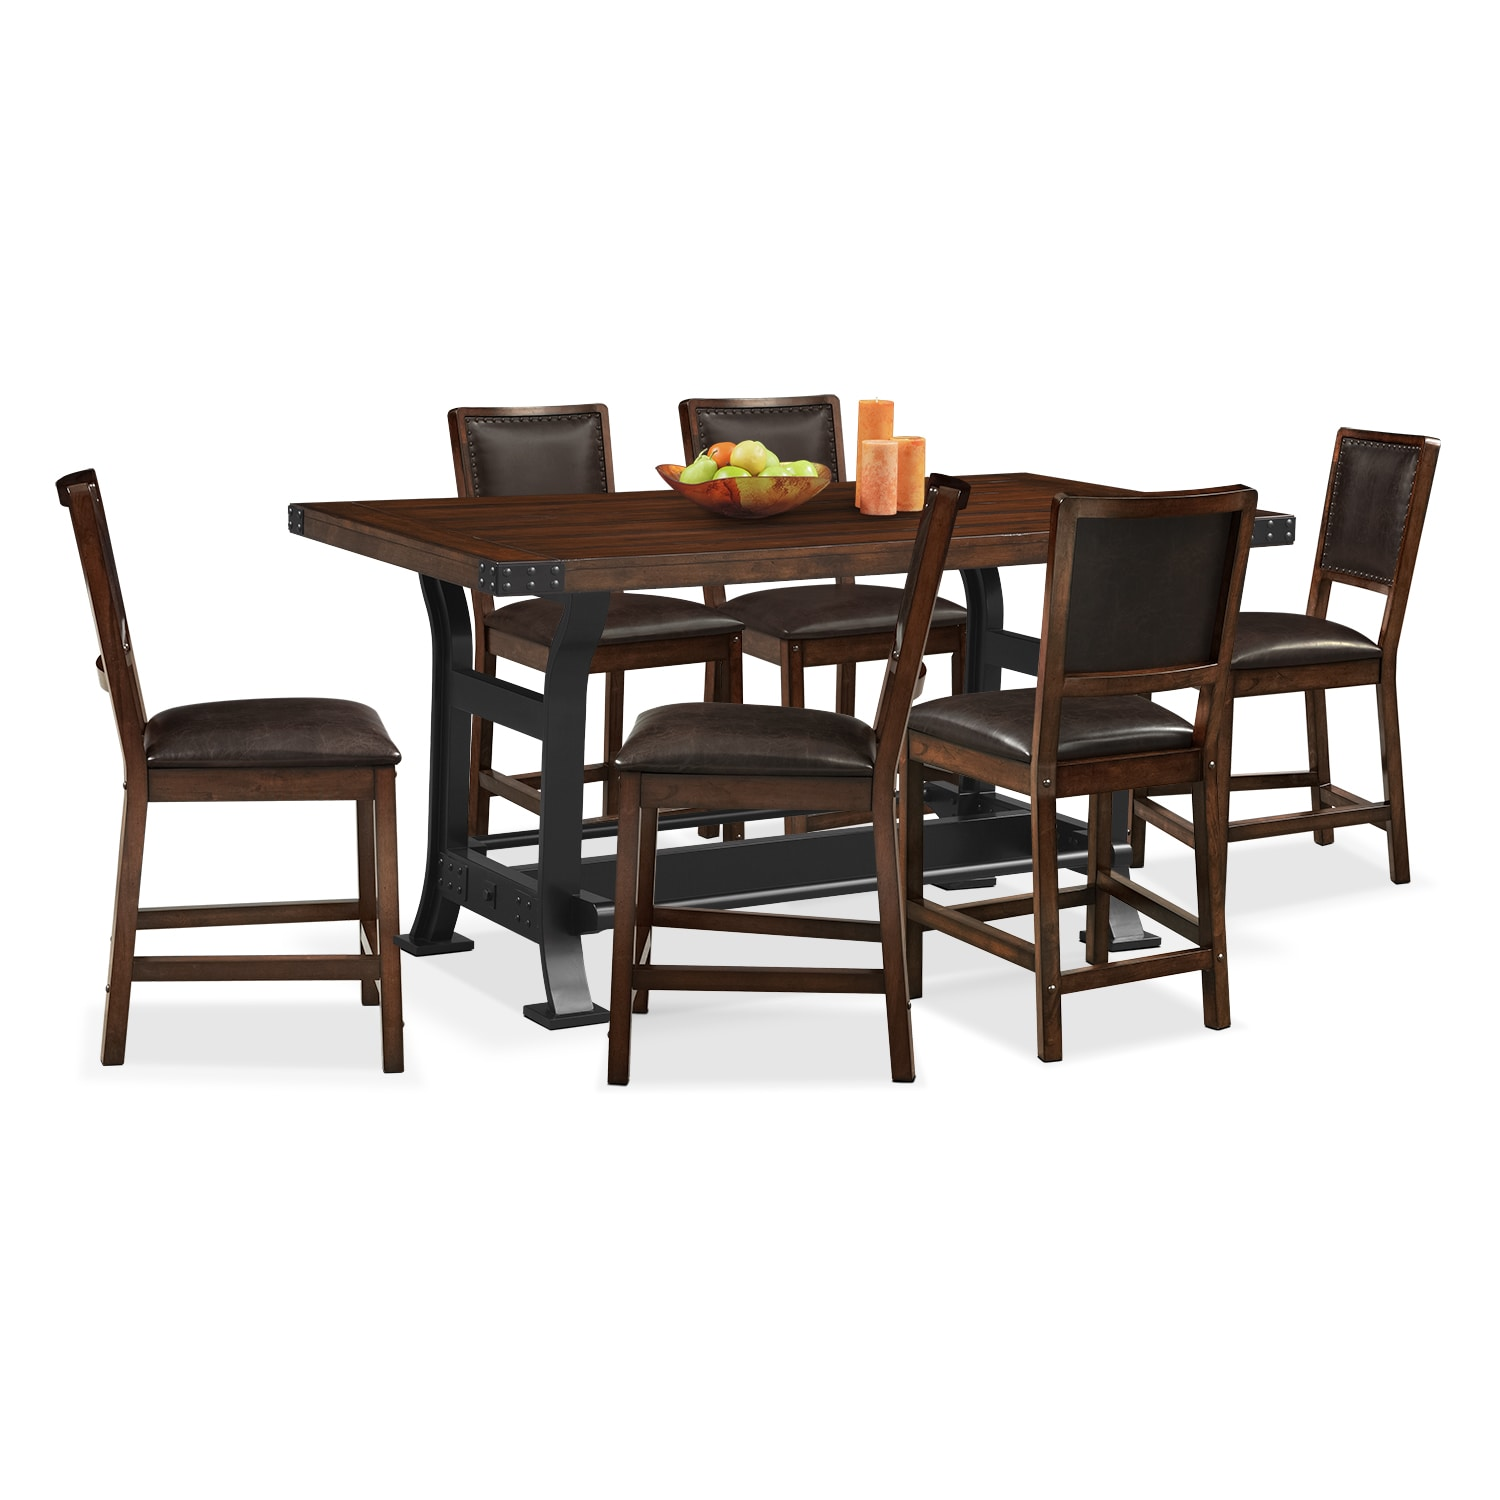 Dining Room Furniture - Newcastle 7 Pc. Counter-Height Dining Room